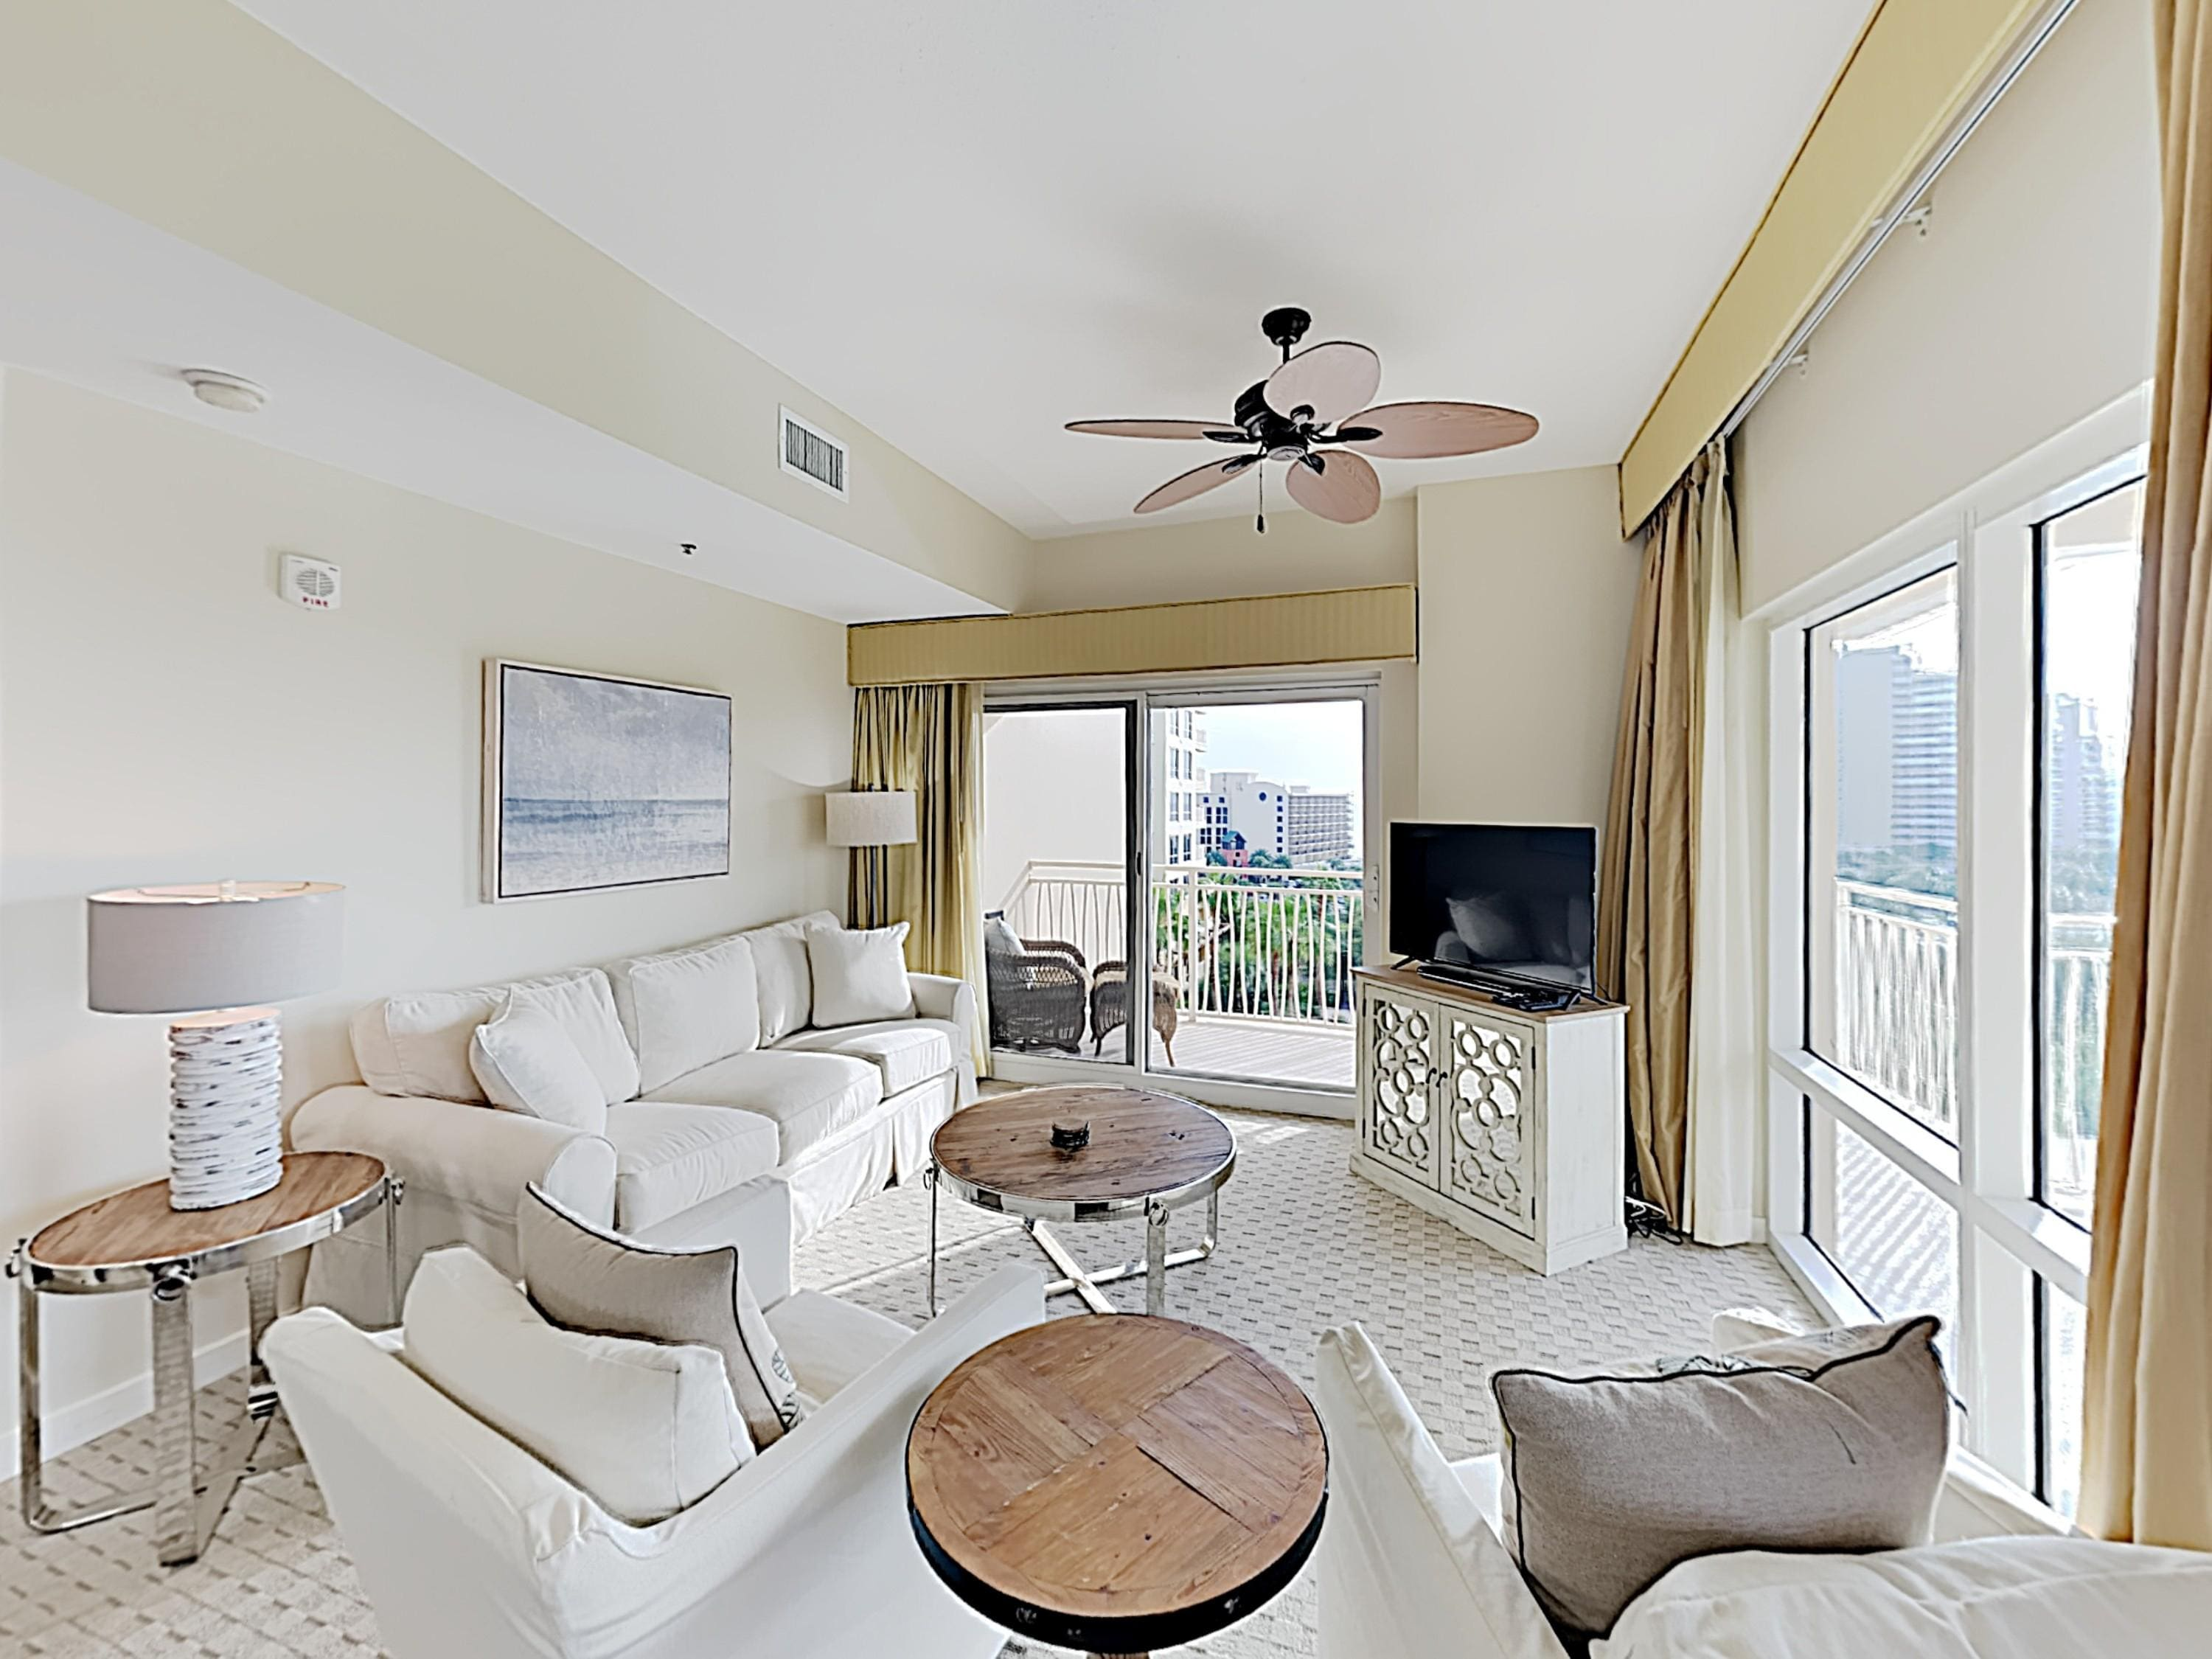 Welcome to Miramar Beach! This 5th-floor condo is professionally managed by TurnKey Vacation Rentals.